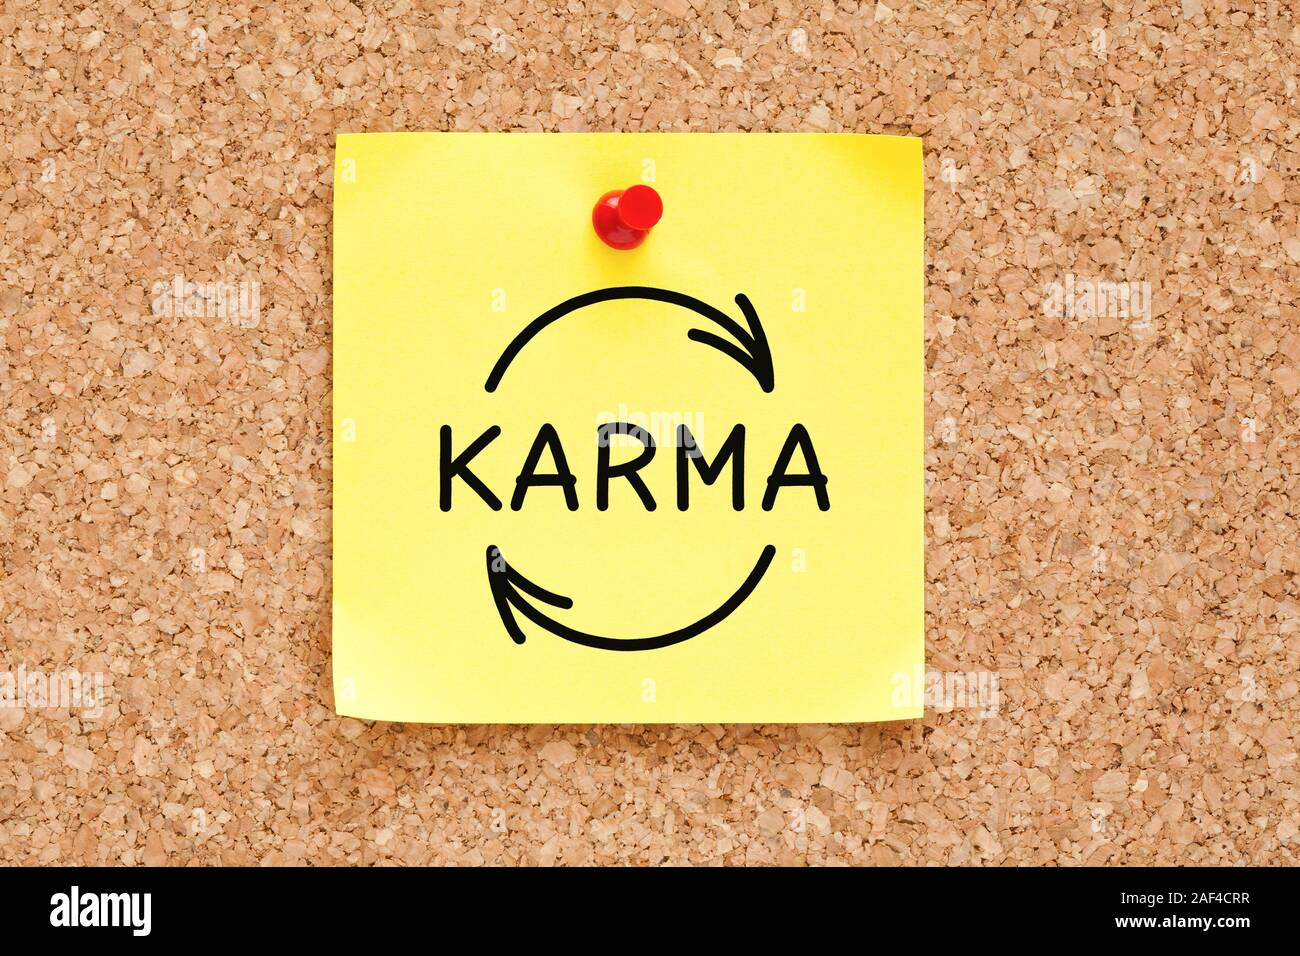 Hand drawing Karma cycle concept on yellow adhesive note pinned on cork bulletin board. Stock Photo